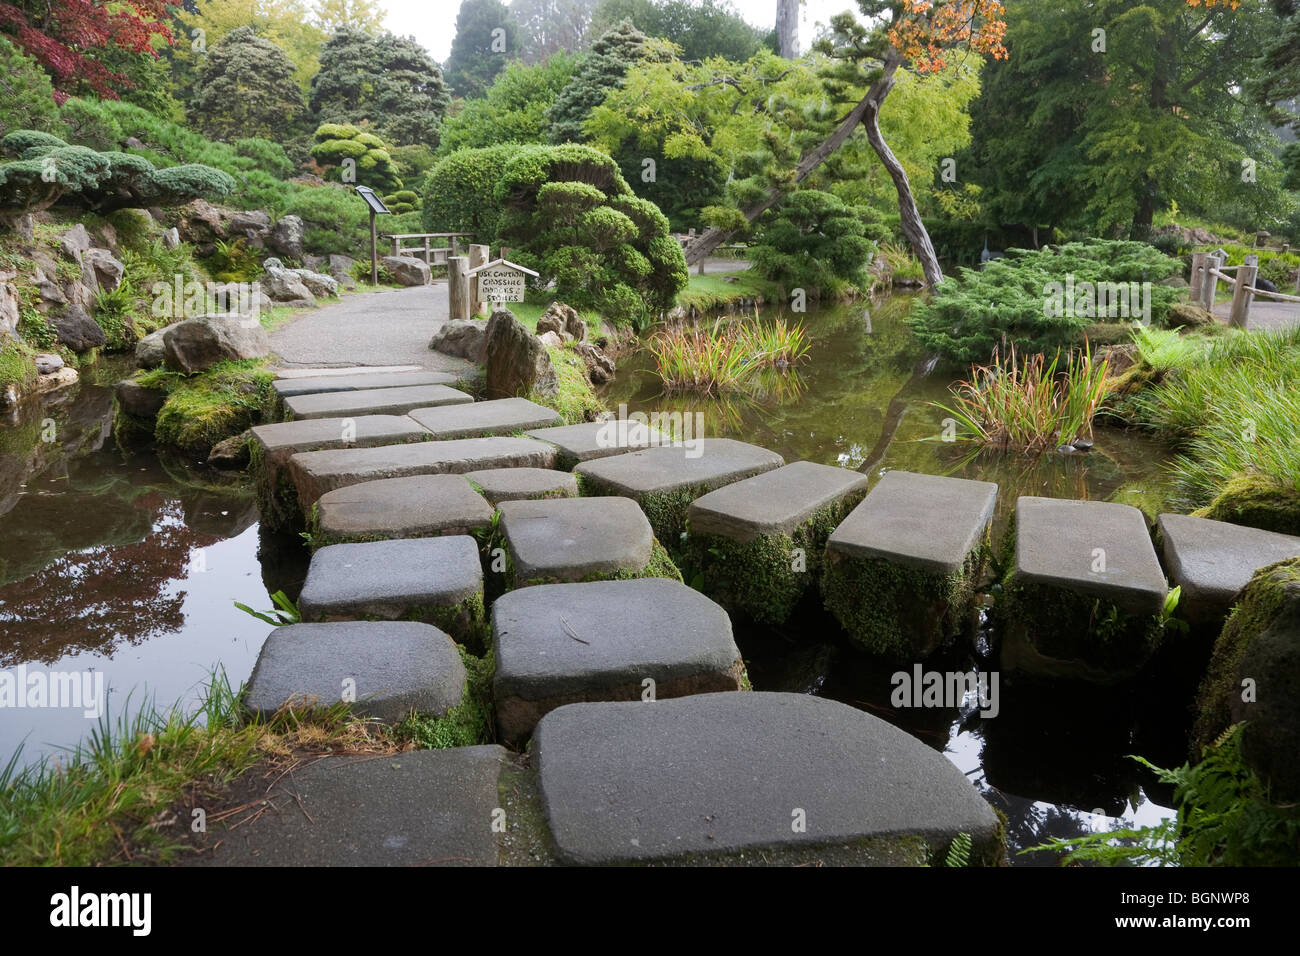 japanese garden stone bridge